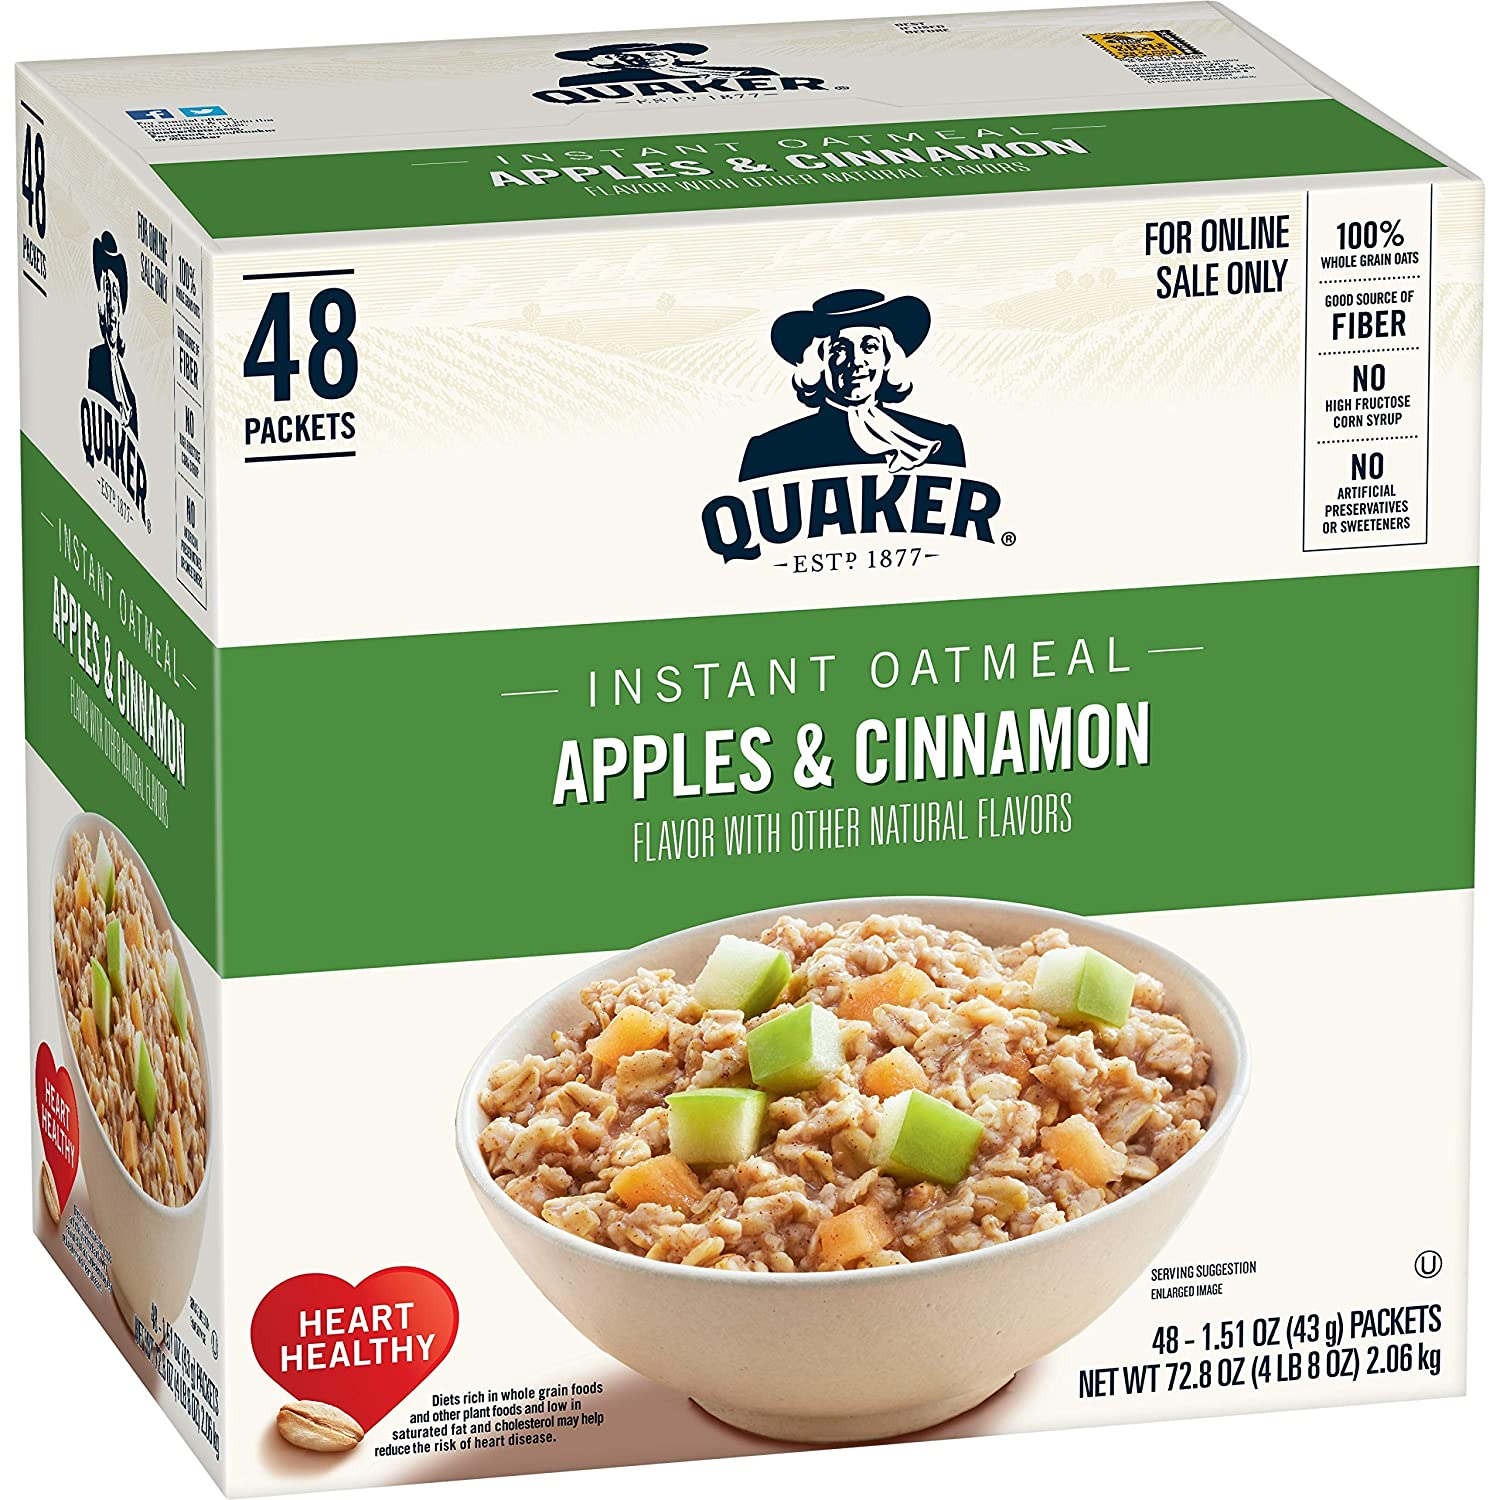 Quaker Instant Oatmeal, Apples and Cinnamon, 48 Count, 1.51 oz Packets